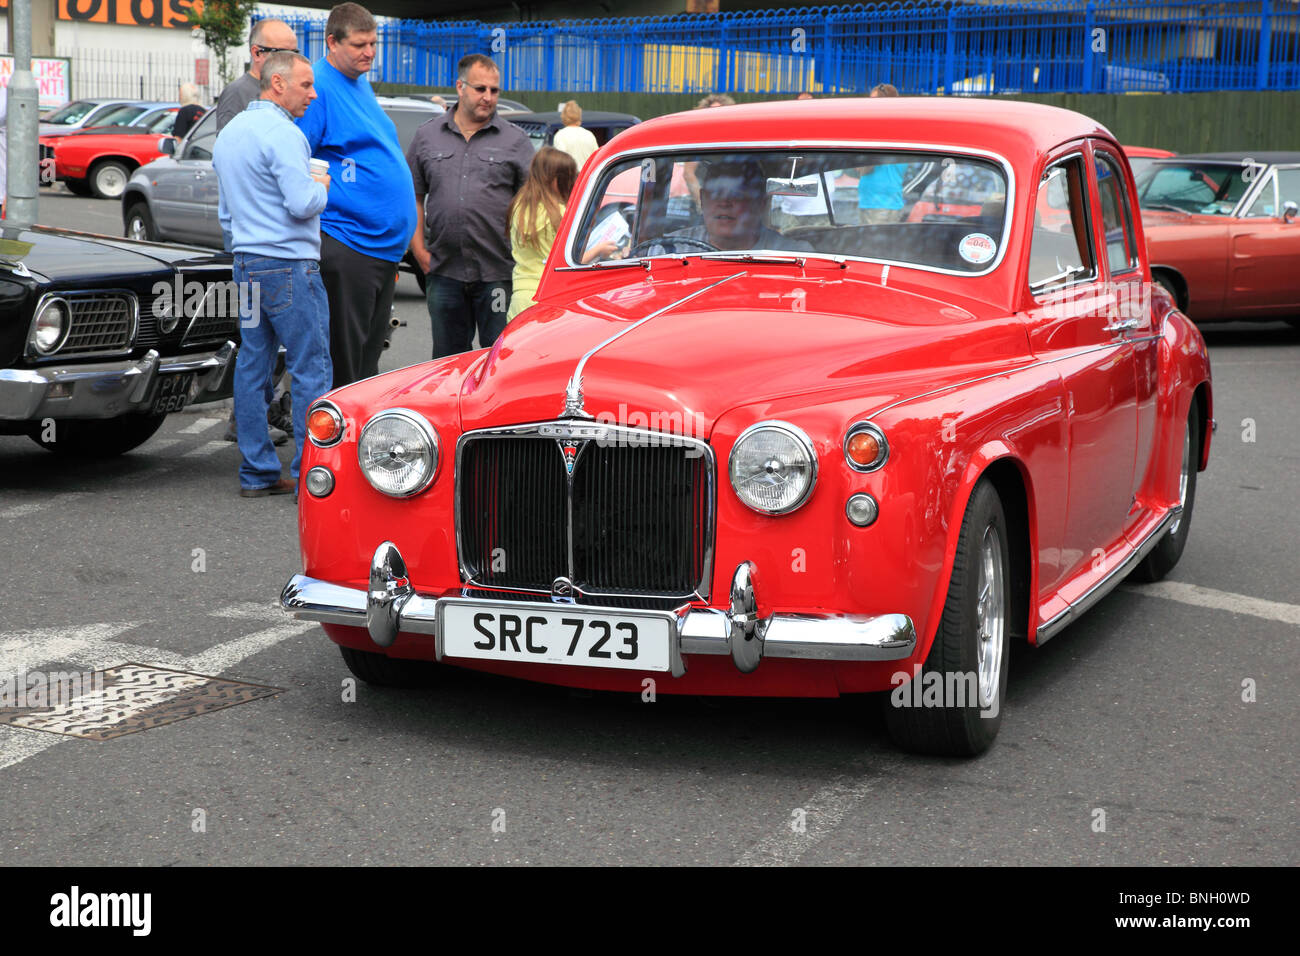 Rover 100 Old Car Stock Photos & Rover 100 Old Car Stock Images - Alamy